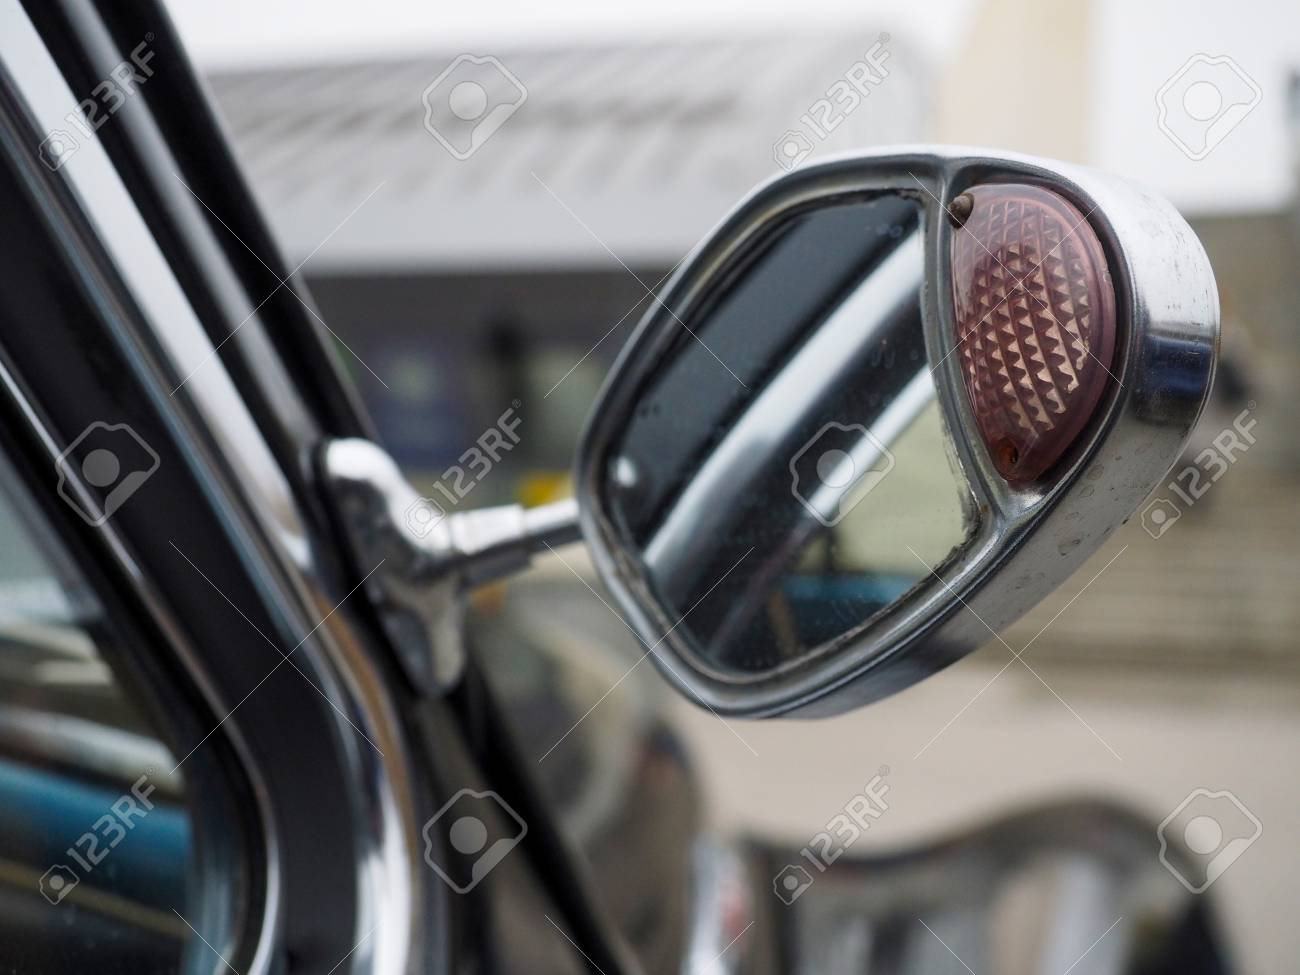 Old car mirror with turn indicator installed on the door